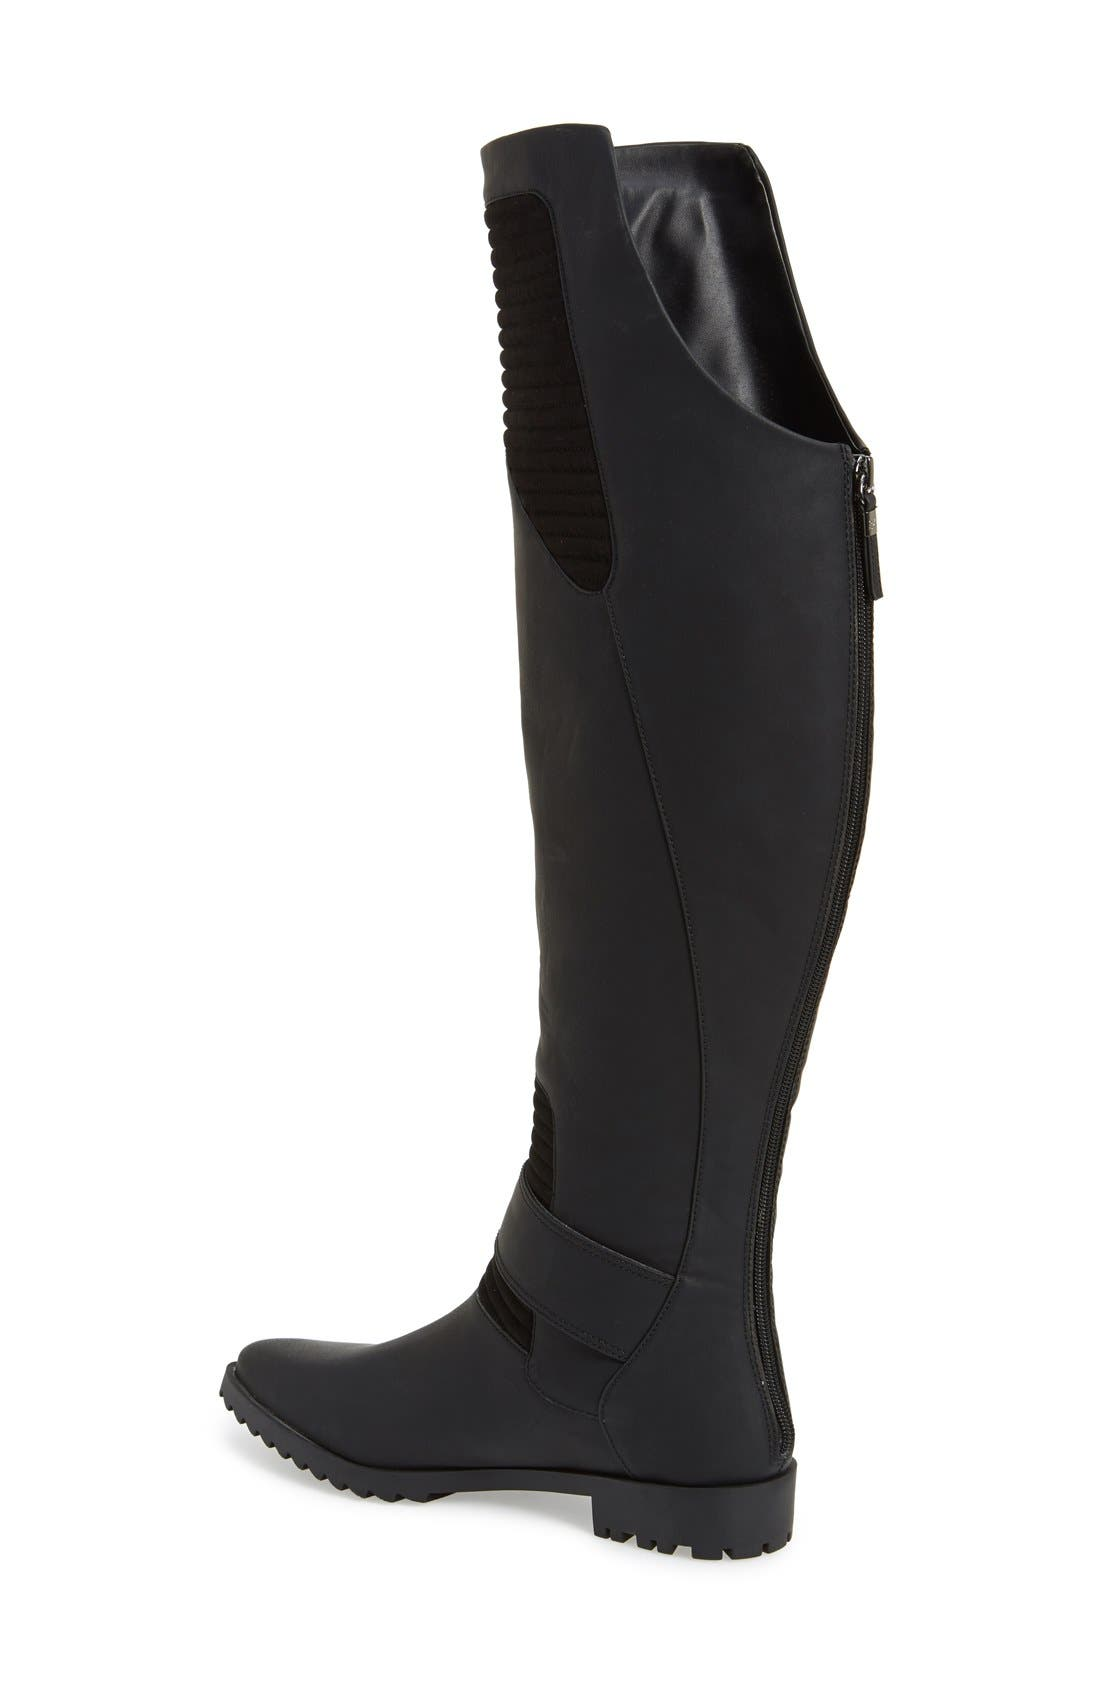 GX BY GWEN STEFANI, 'Toledo' Over the Knee Boot, Alternate thumbnail 3, color, 001